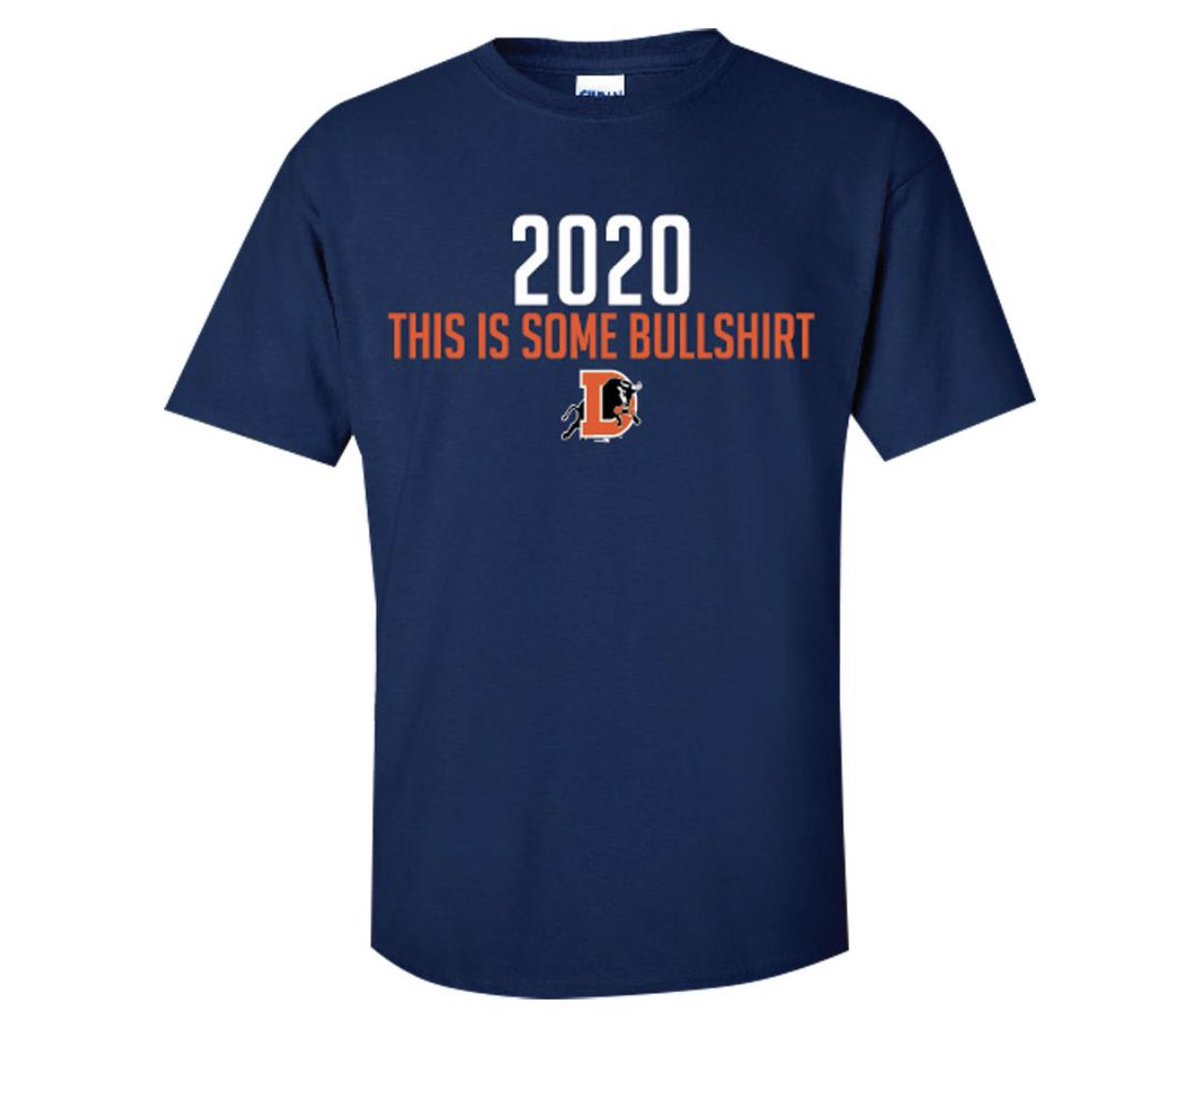 Great shirt from the @DurhamBulls ($23)